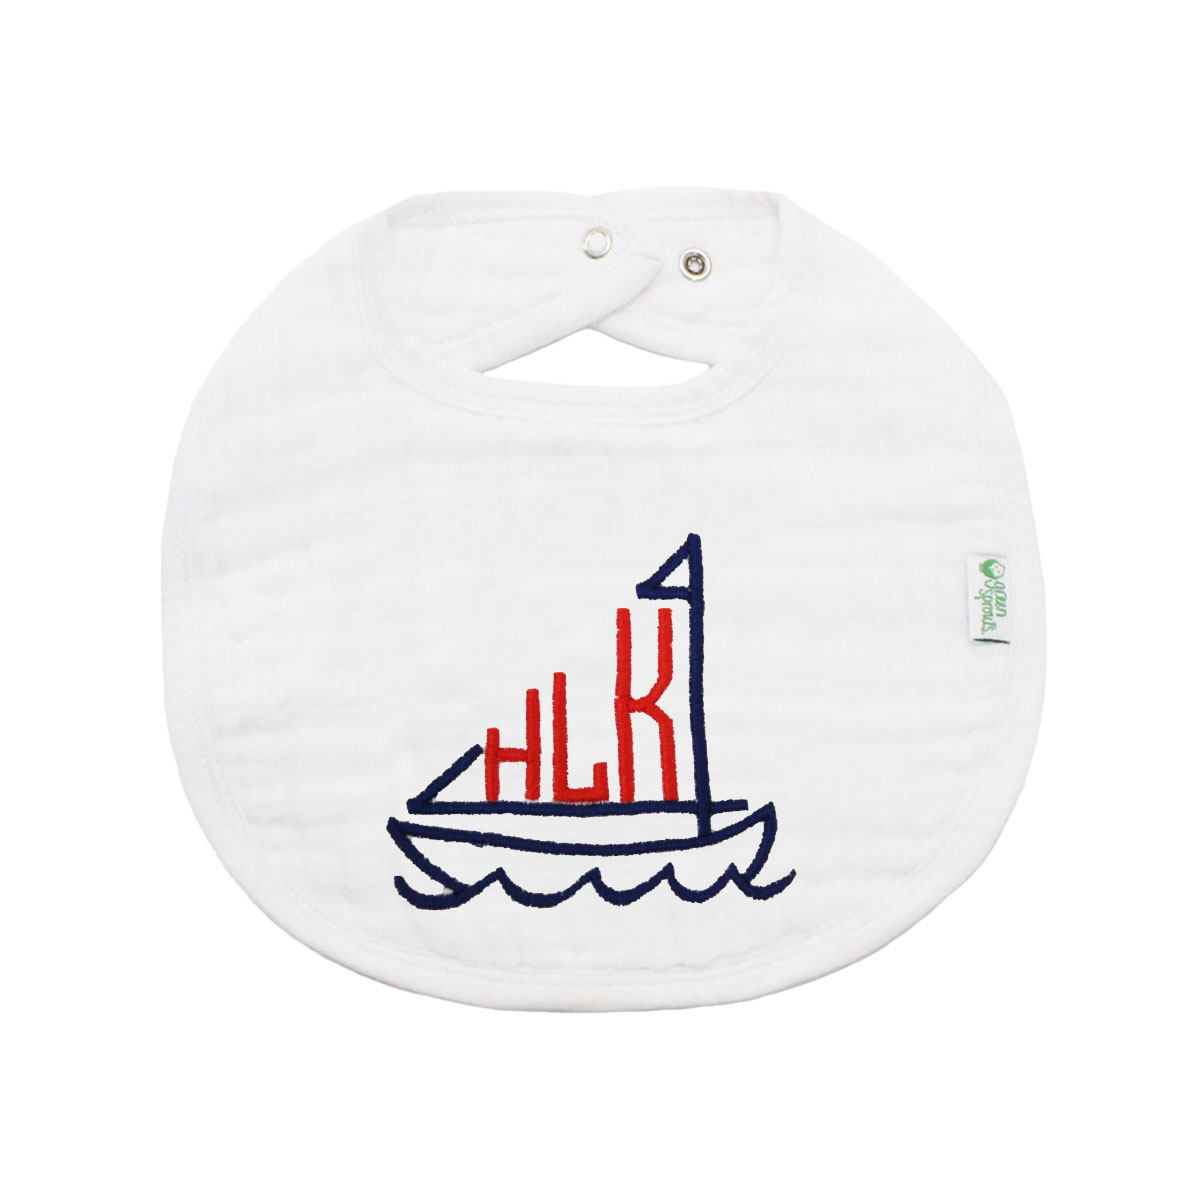 The Tot Organic Cotton White Bib with Personalized Monogram in Sailboat